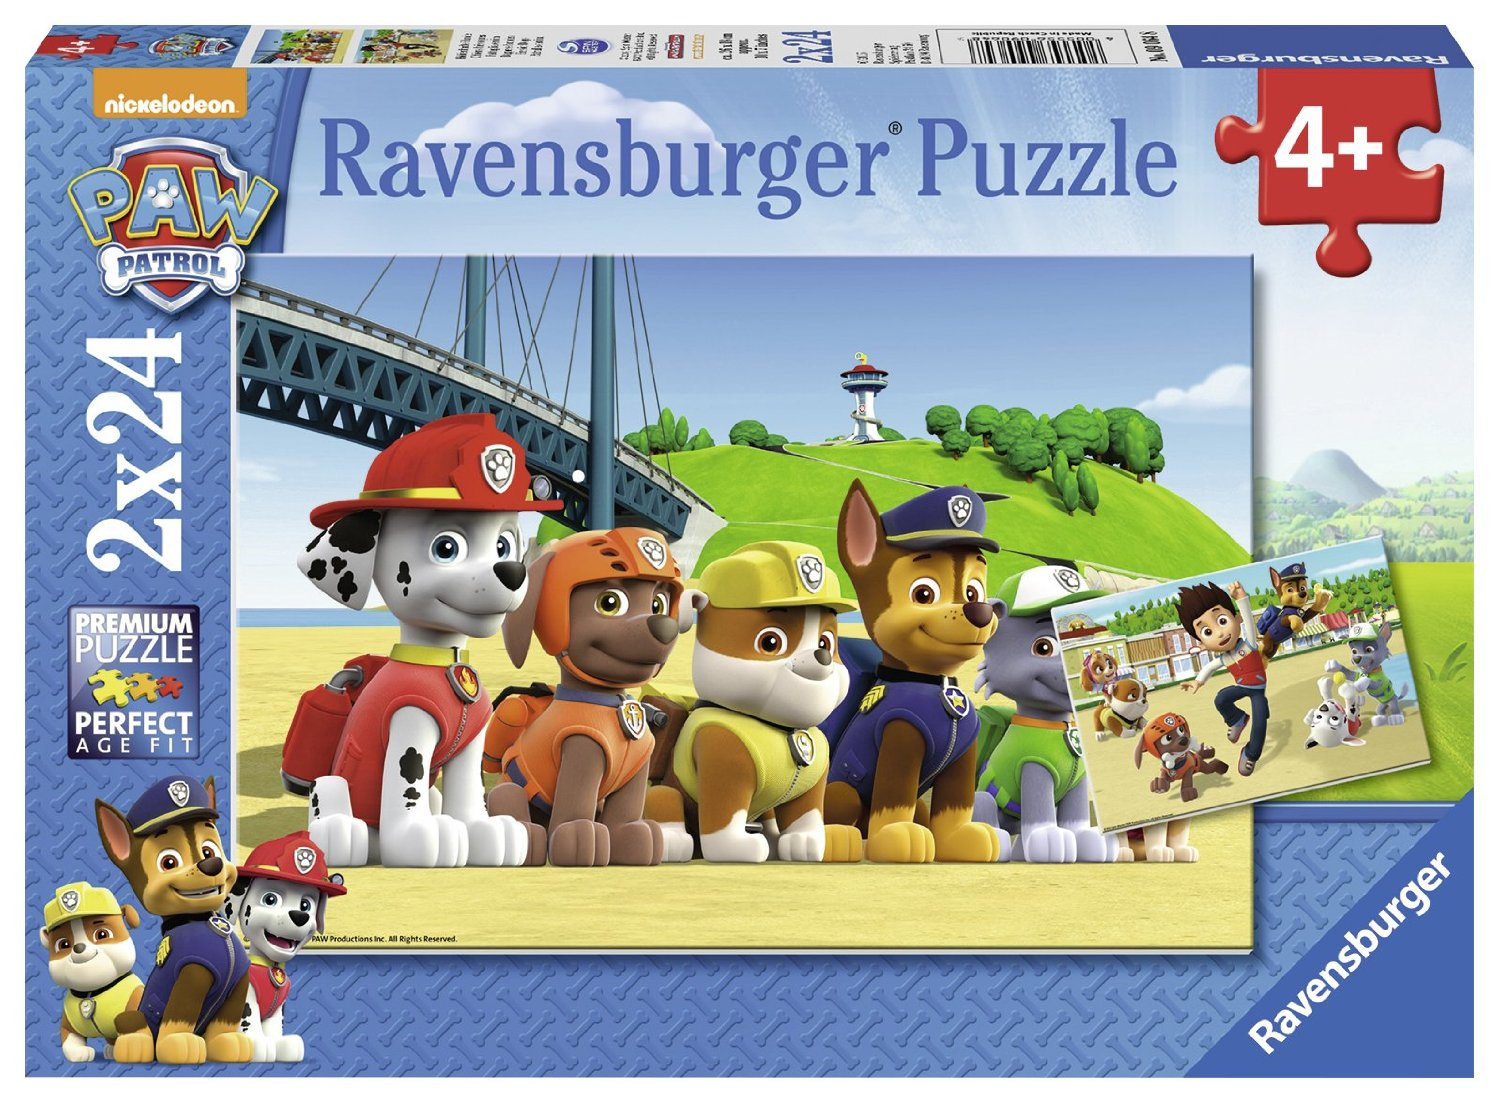 Ravensburger 2 Puzzles Pat Patrouille Puzzle 24 Pieces p51641 on disney computer themes